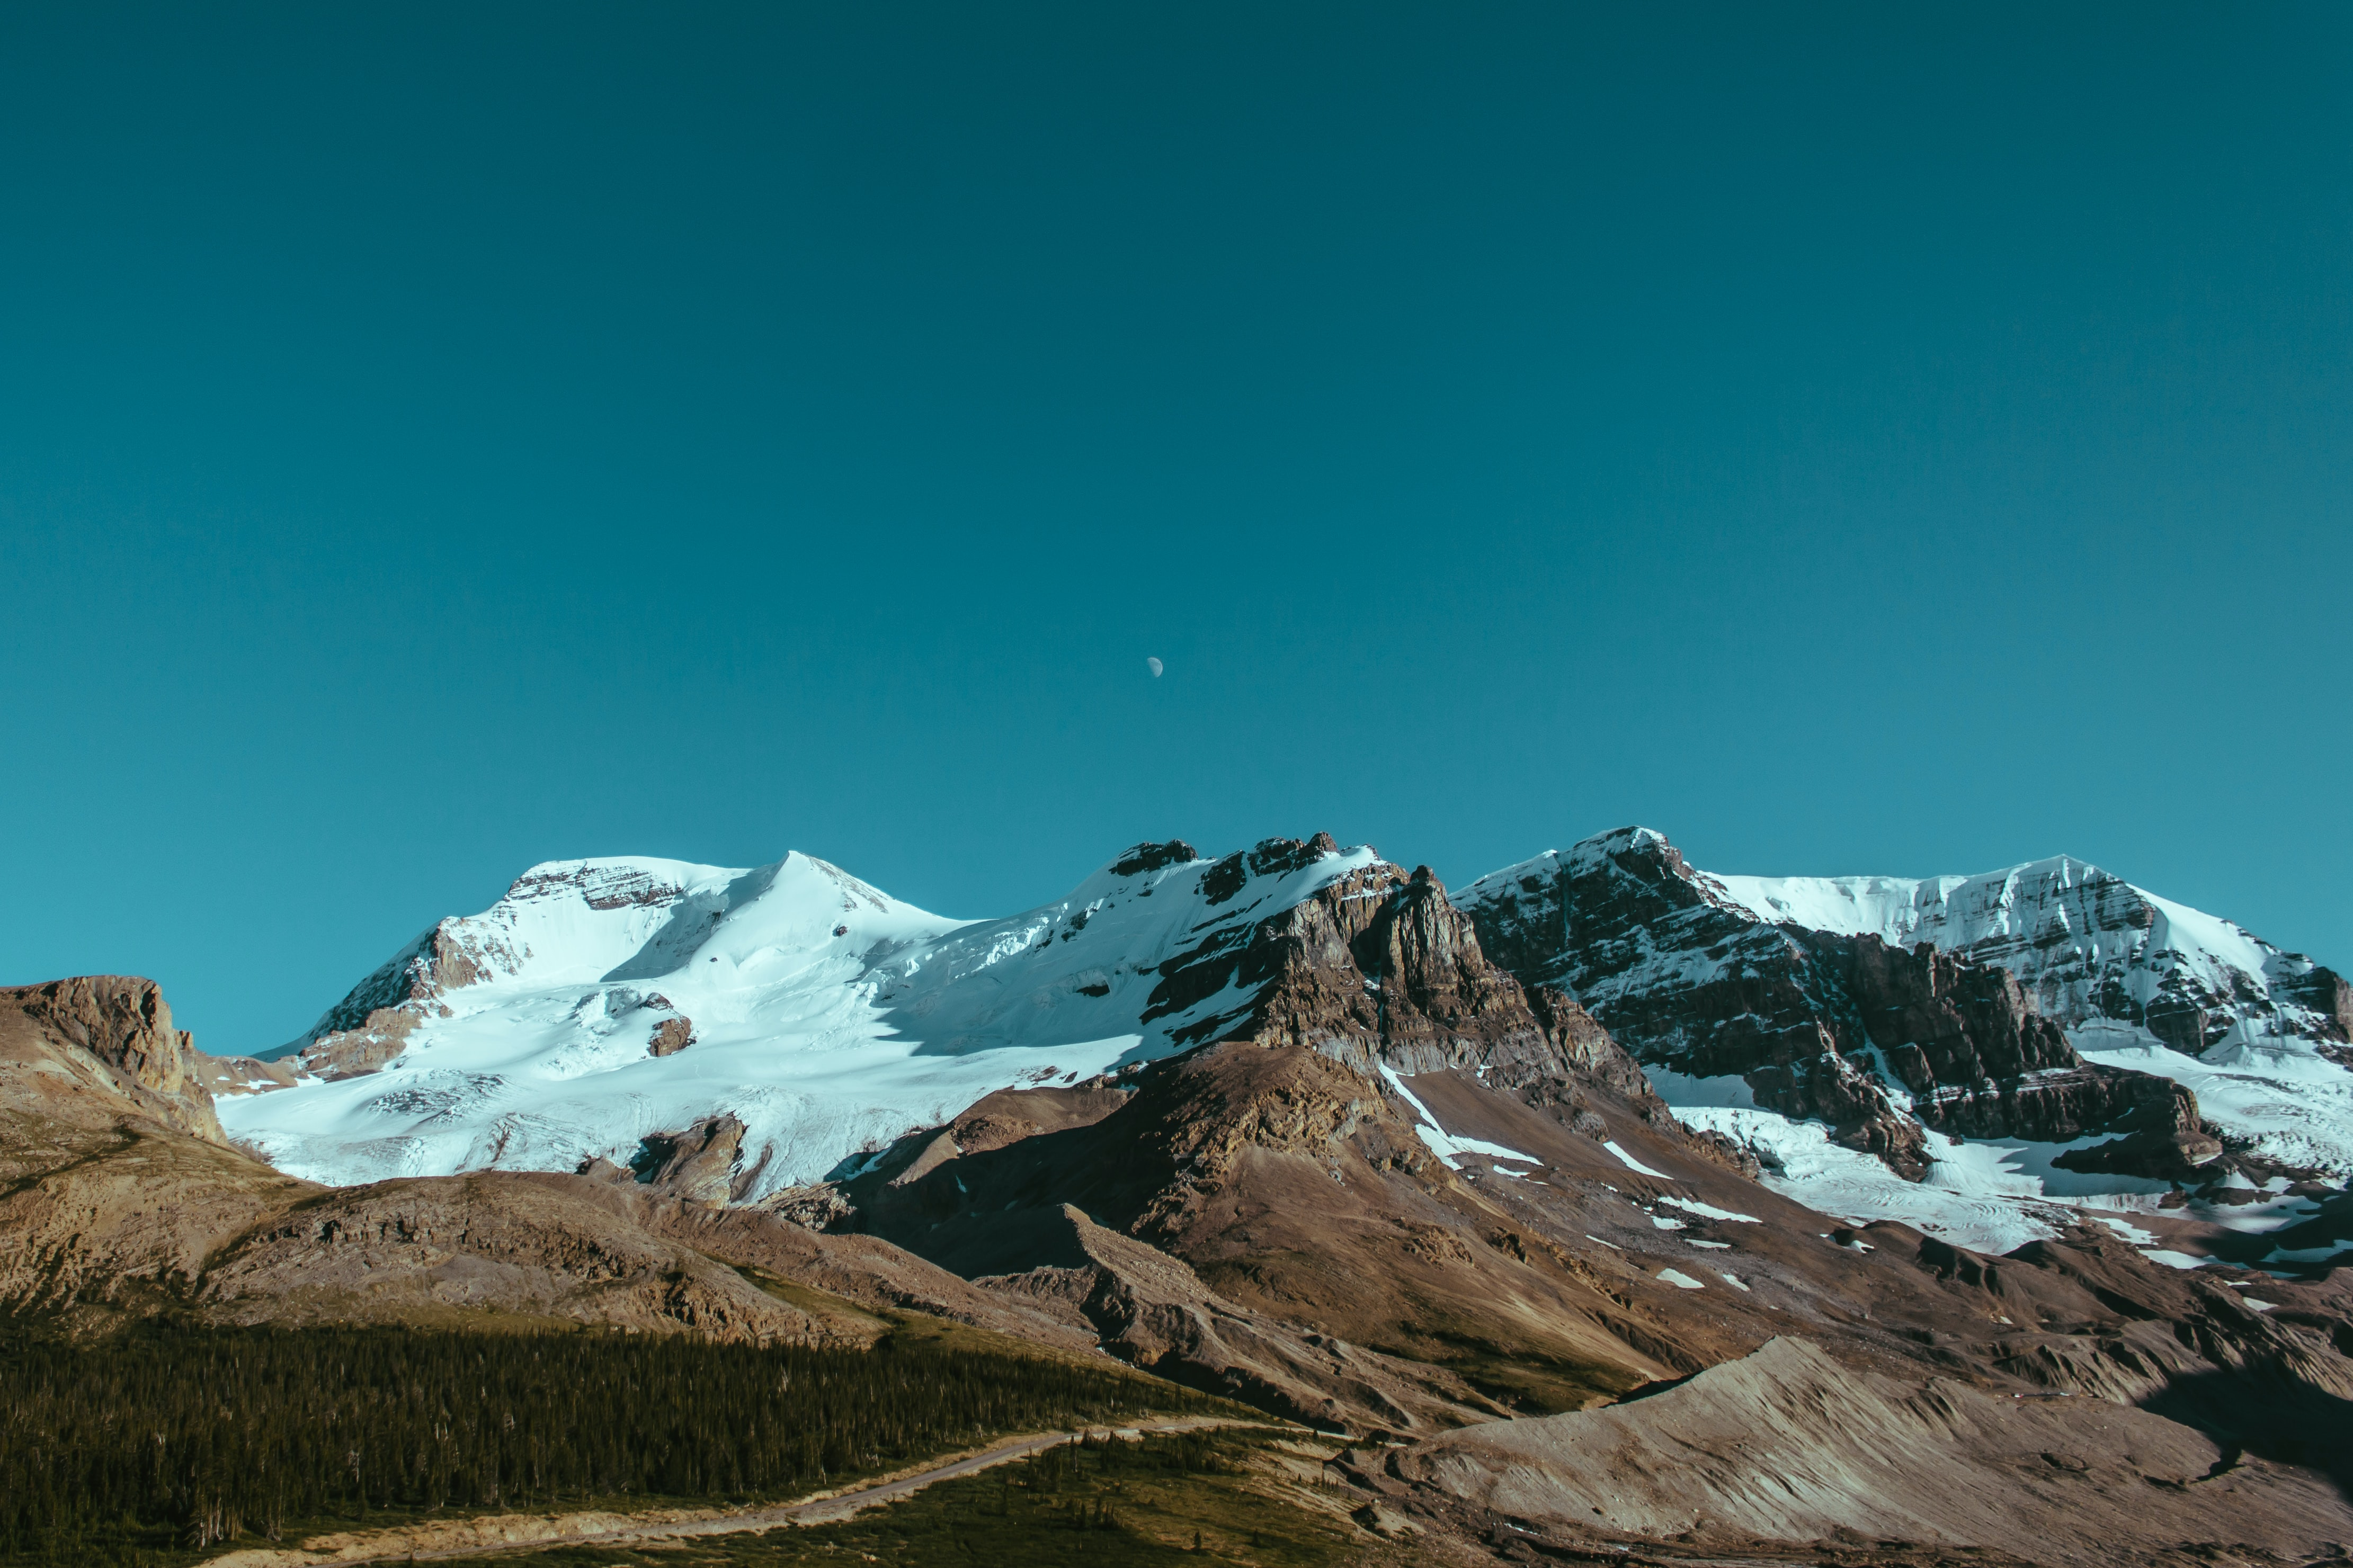 A majestic Alpine landscape of rocky mountains covered in snow